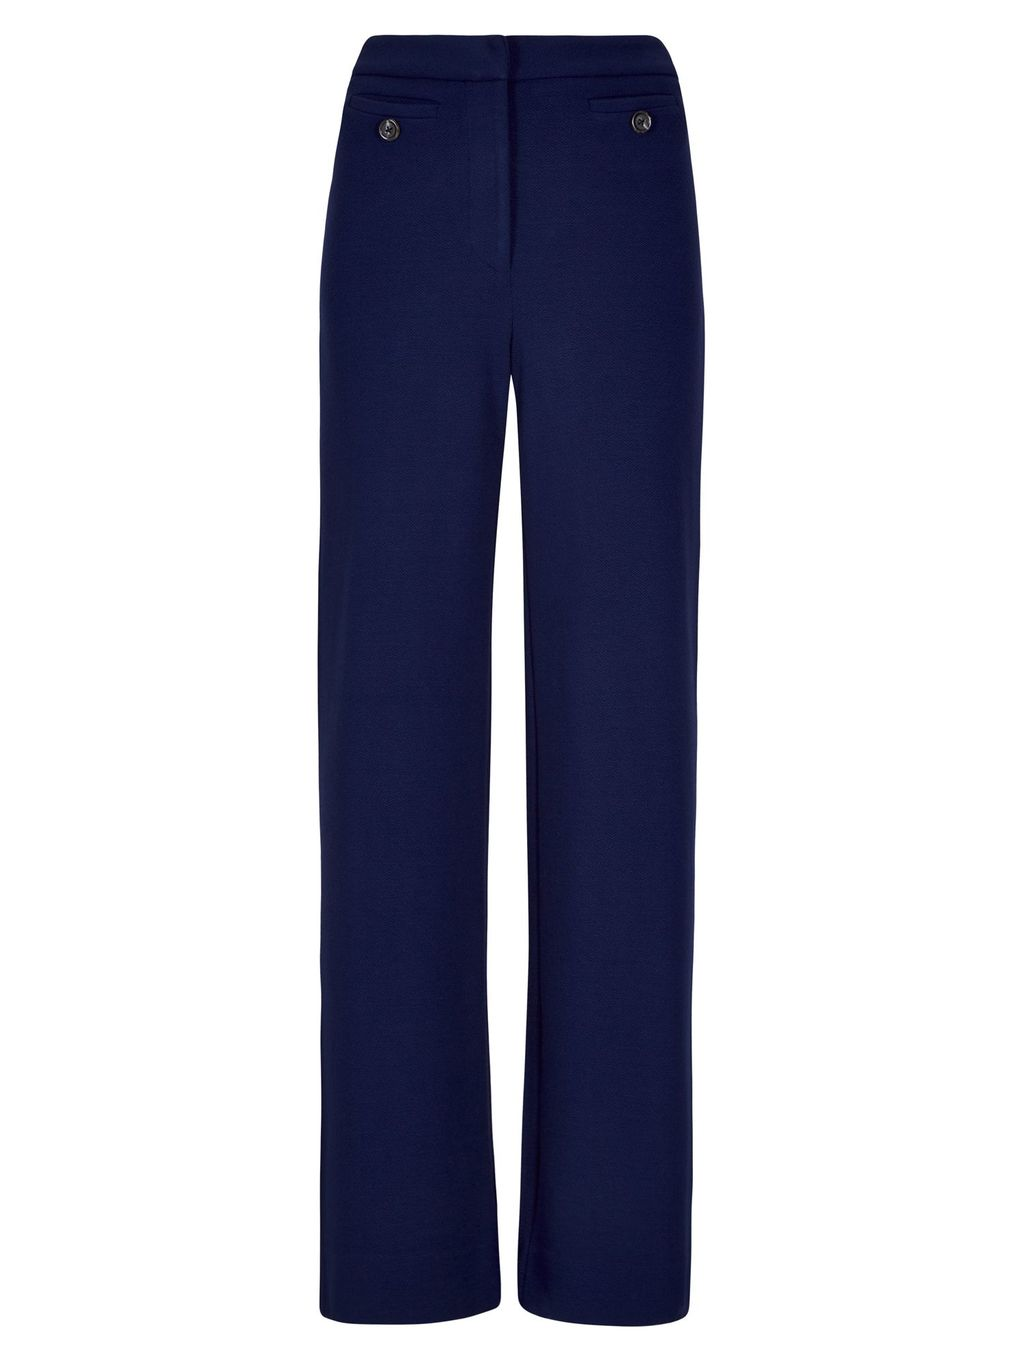 Crepe Jersey Wide Leg Trousers, Navy - length: standard; pattern: plain; waist: high rise; predominant colour: navy; fibres: polyester/polyamide - 100%; texture group: crepes; fit: wide leg; pattern type: fabric; style: standard; occasions: creative work; season: s/s 2016; wardrobe: basic